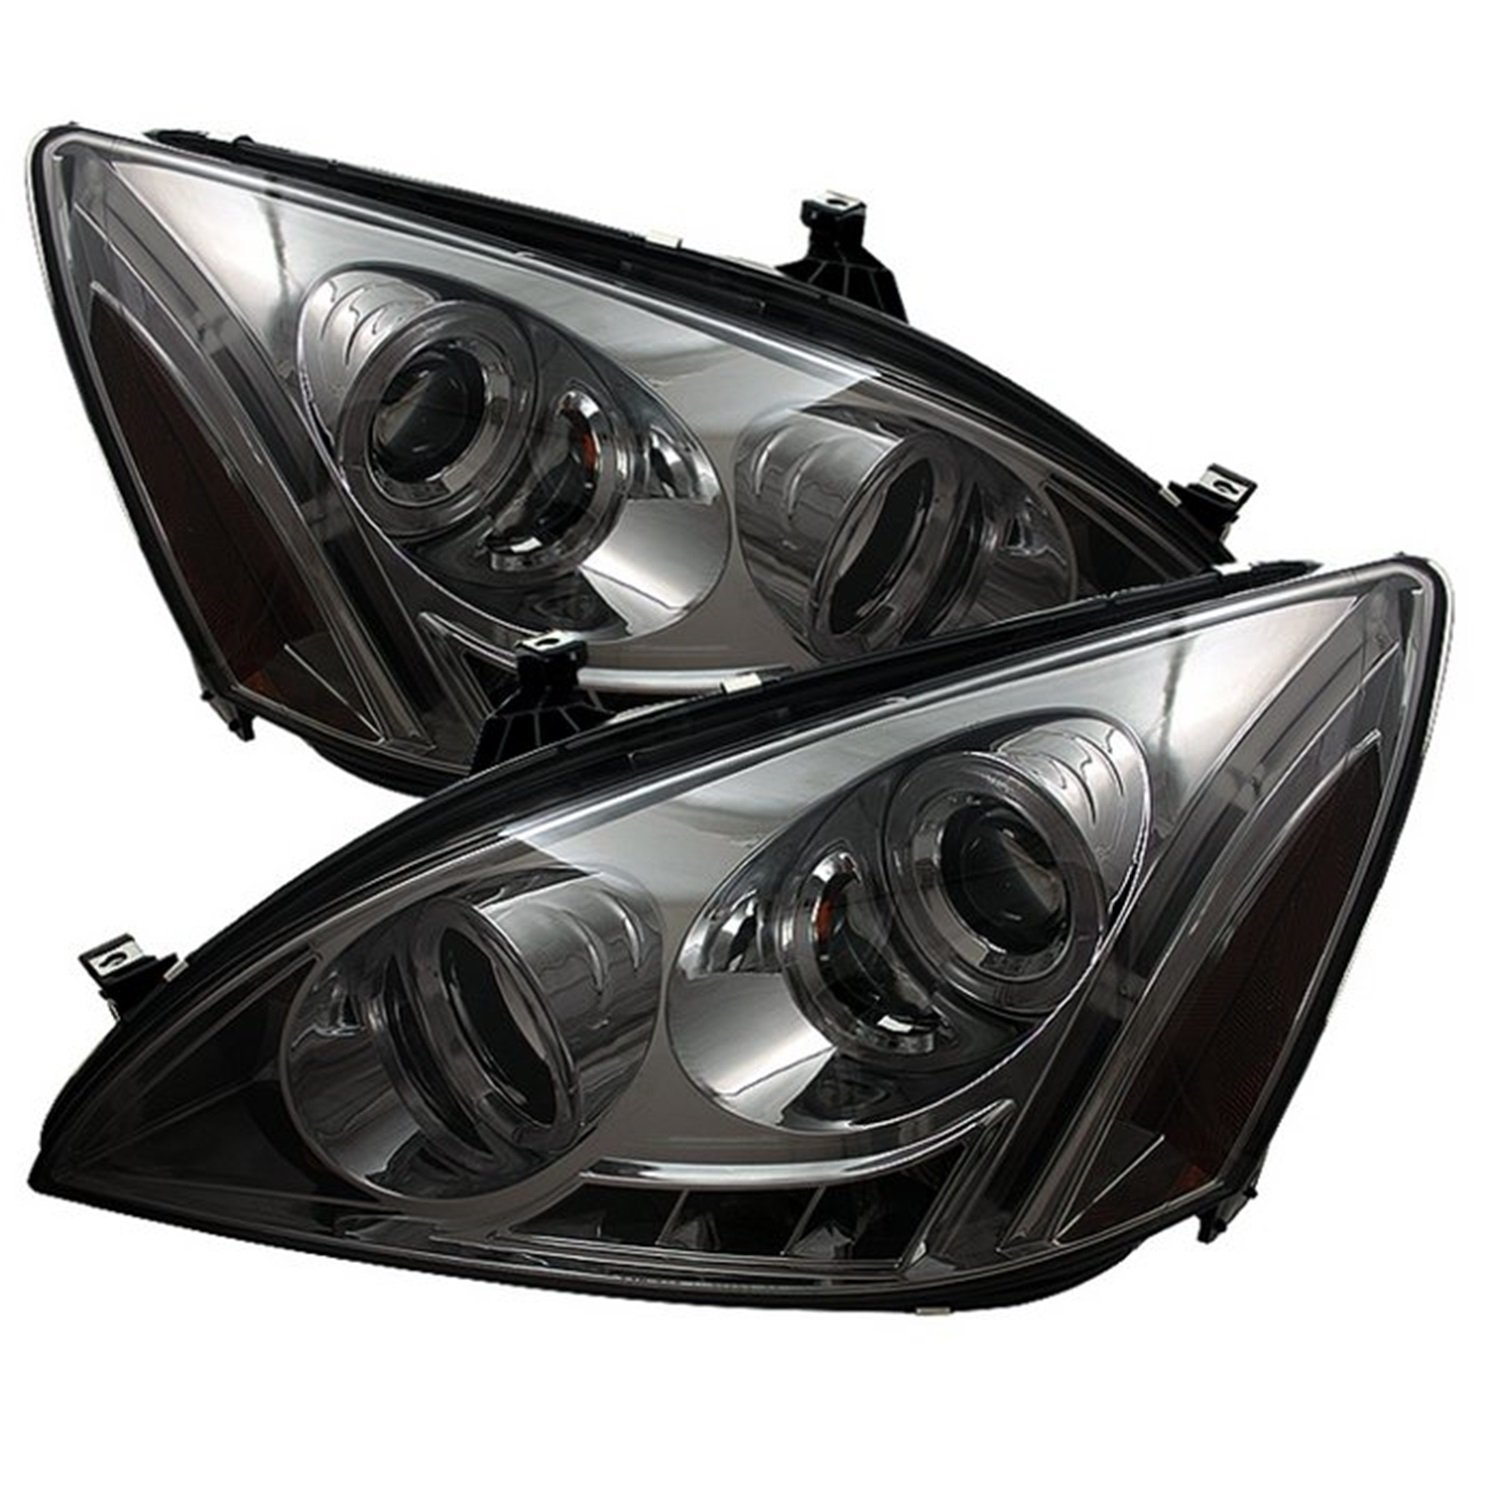 Amazon.com: Spyder Auto Honda Accord Black Halogen LED Projector Headlight:  Automotive